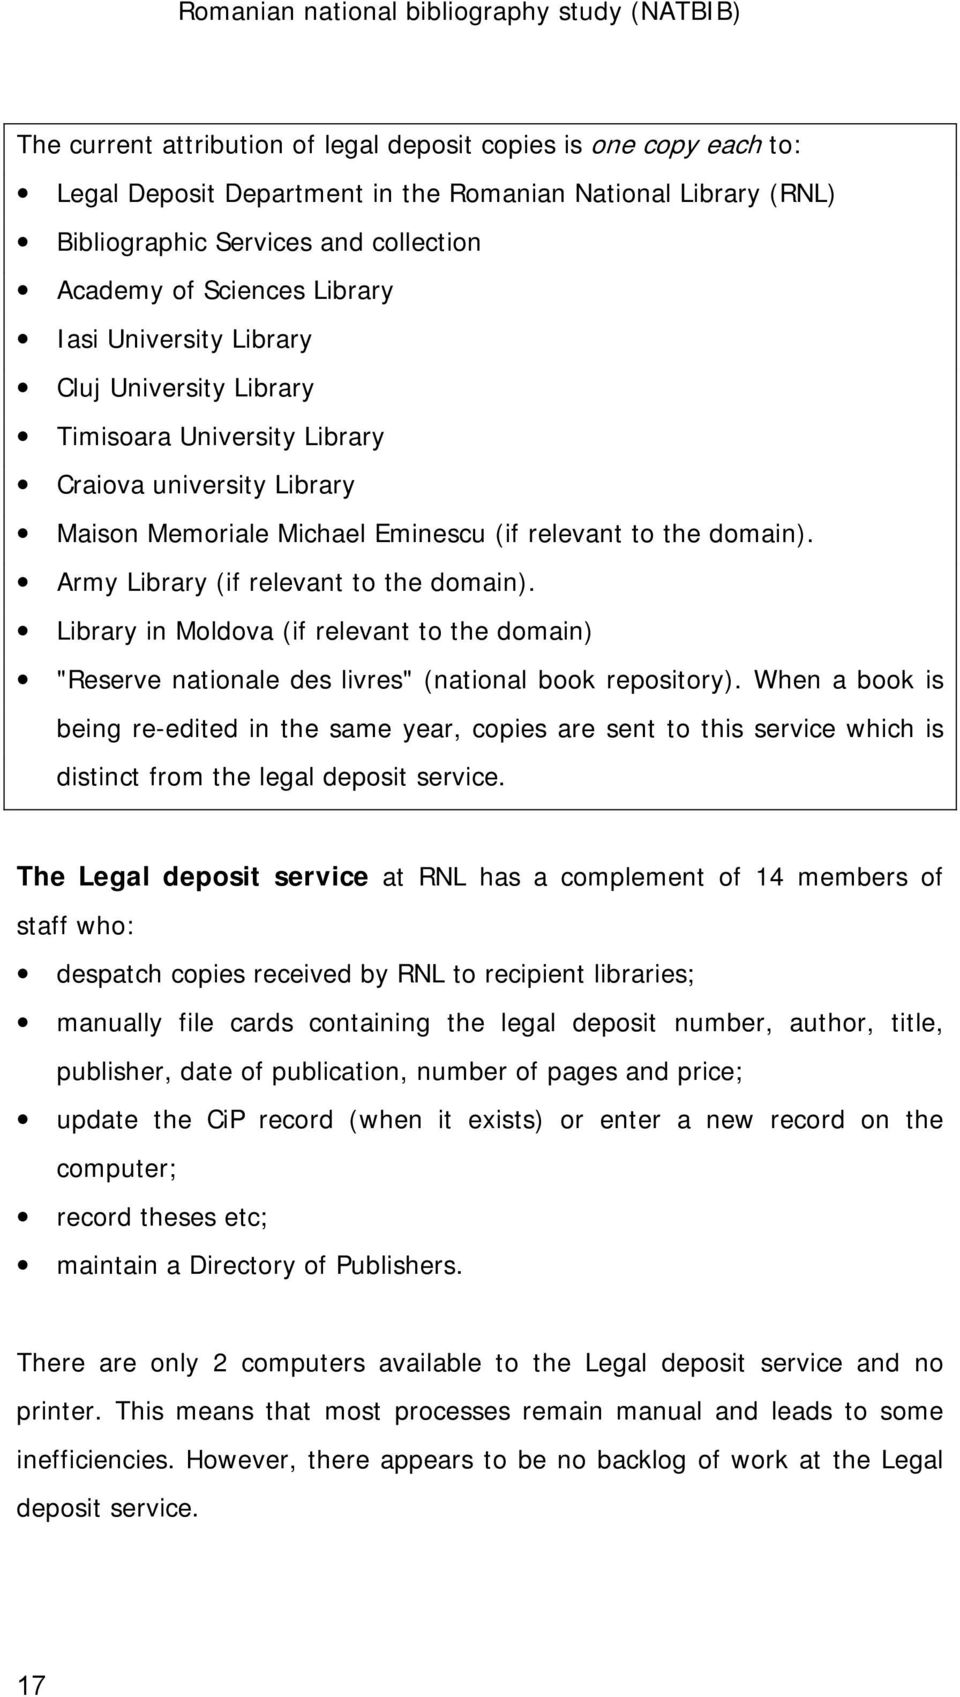 "Army Library (if relevant to the domain). Library in Moldova (if relevant to the domain) ""Reserve nationale des livres"" (national book repository)."